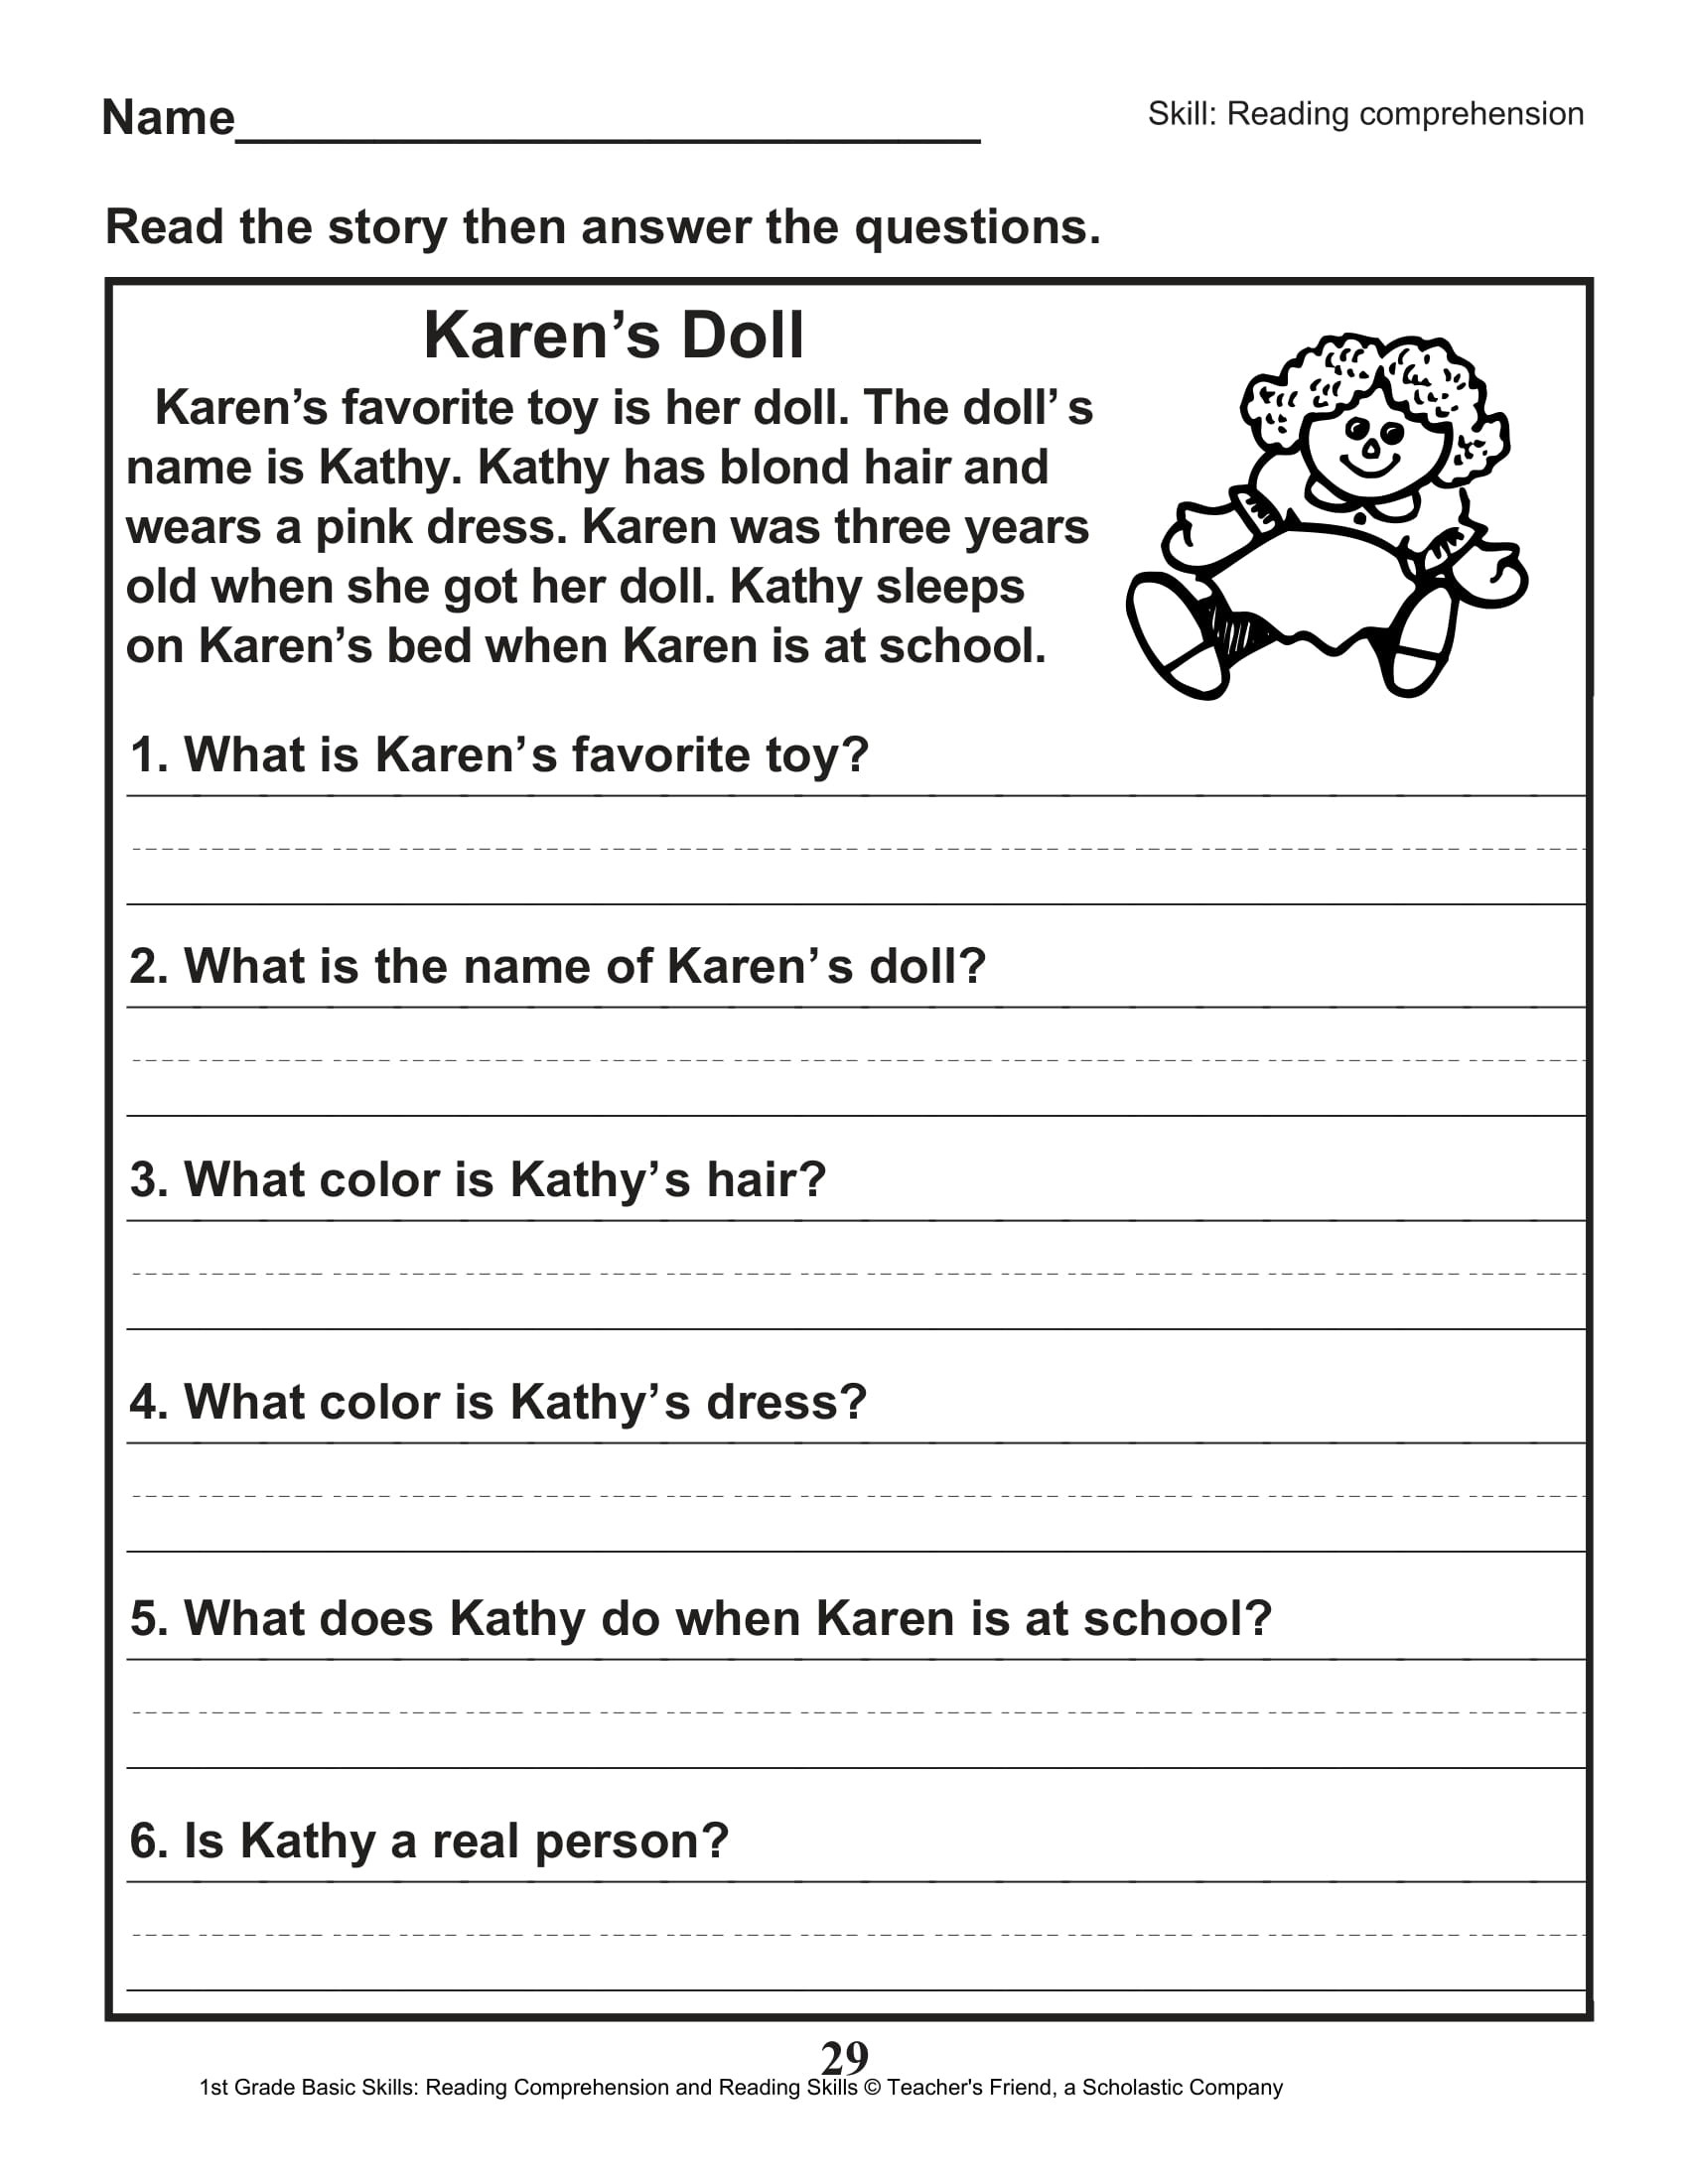 Grade 1 Reading Worksheets Math Worksheet Grade 1 Literacy Worksheets Free Literacy